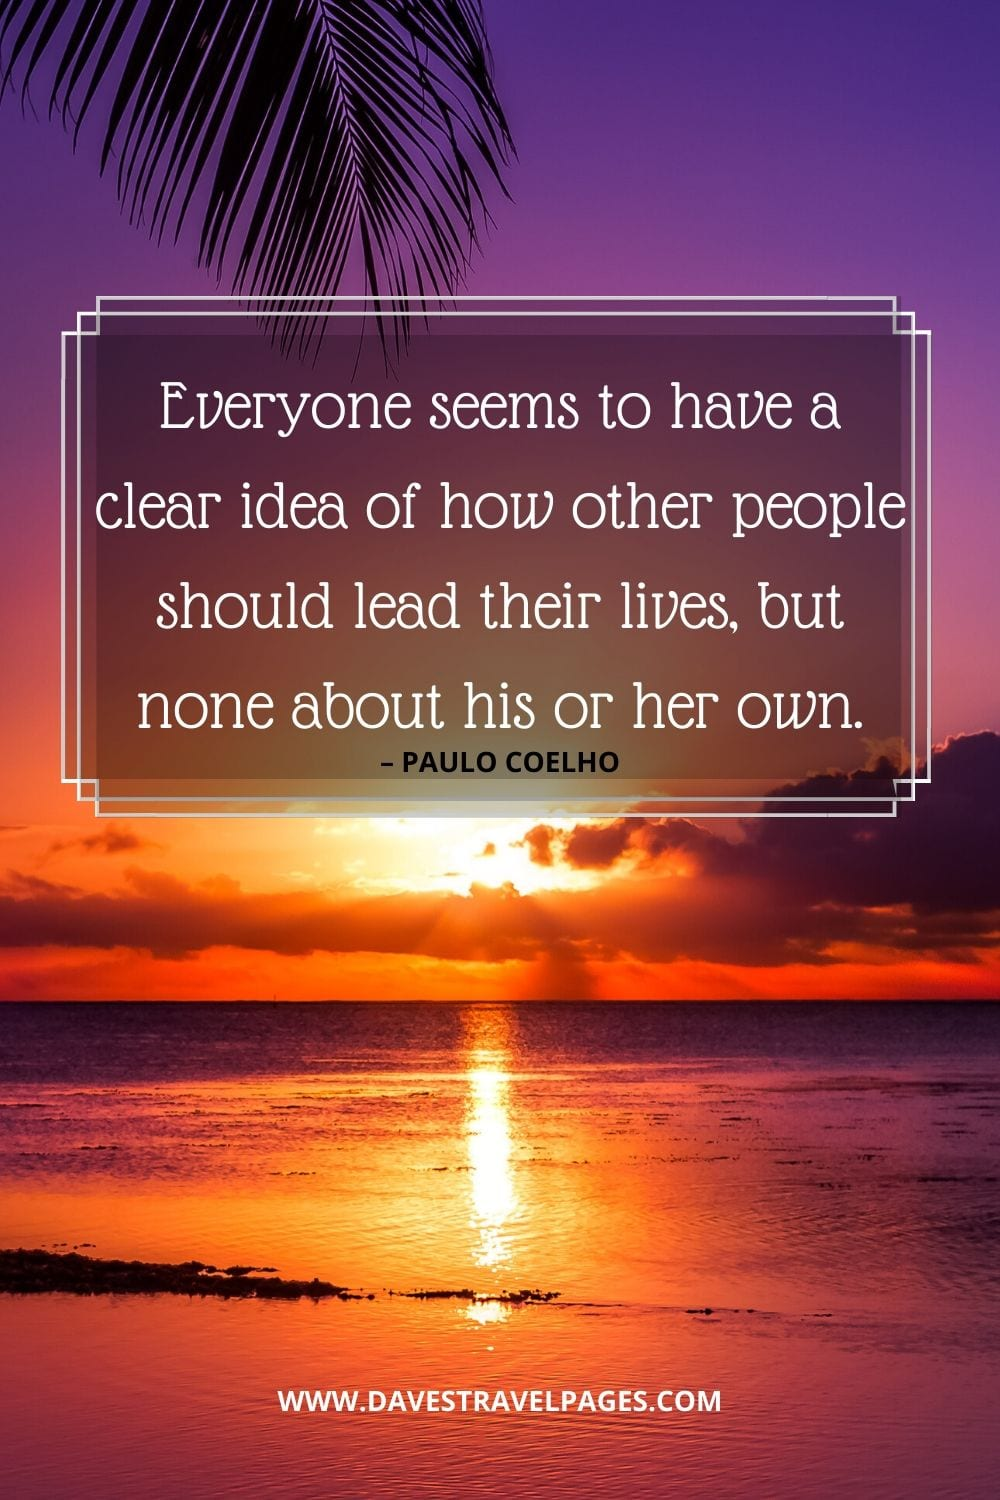 "Thoughtful quote by Paulo Coelho: ""Everyone seems to have a clear idea of how other people should lead their lives, but none about his or her own."""